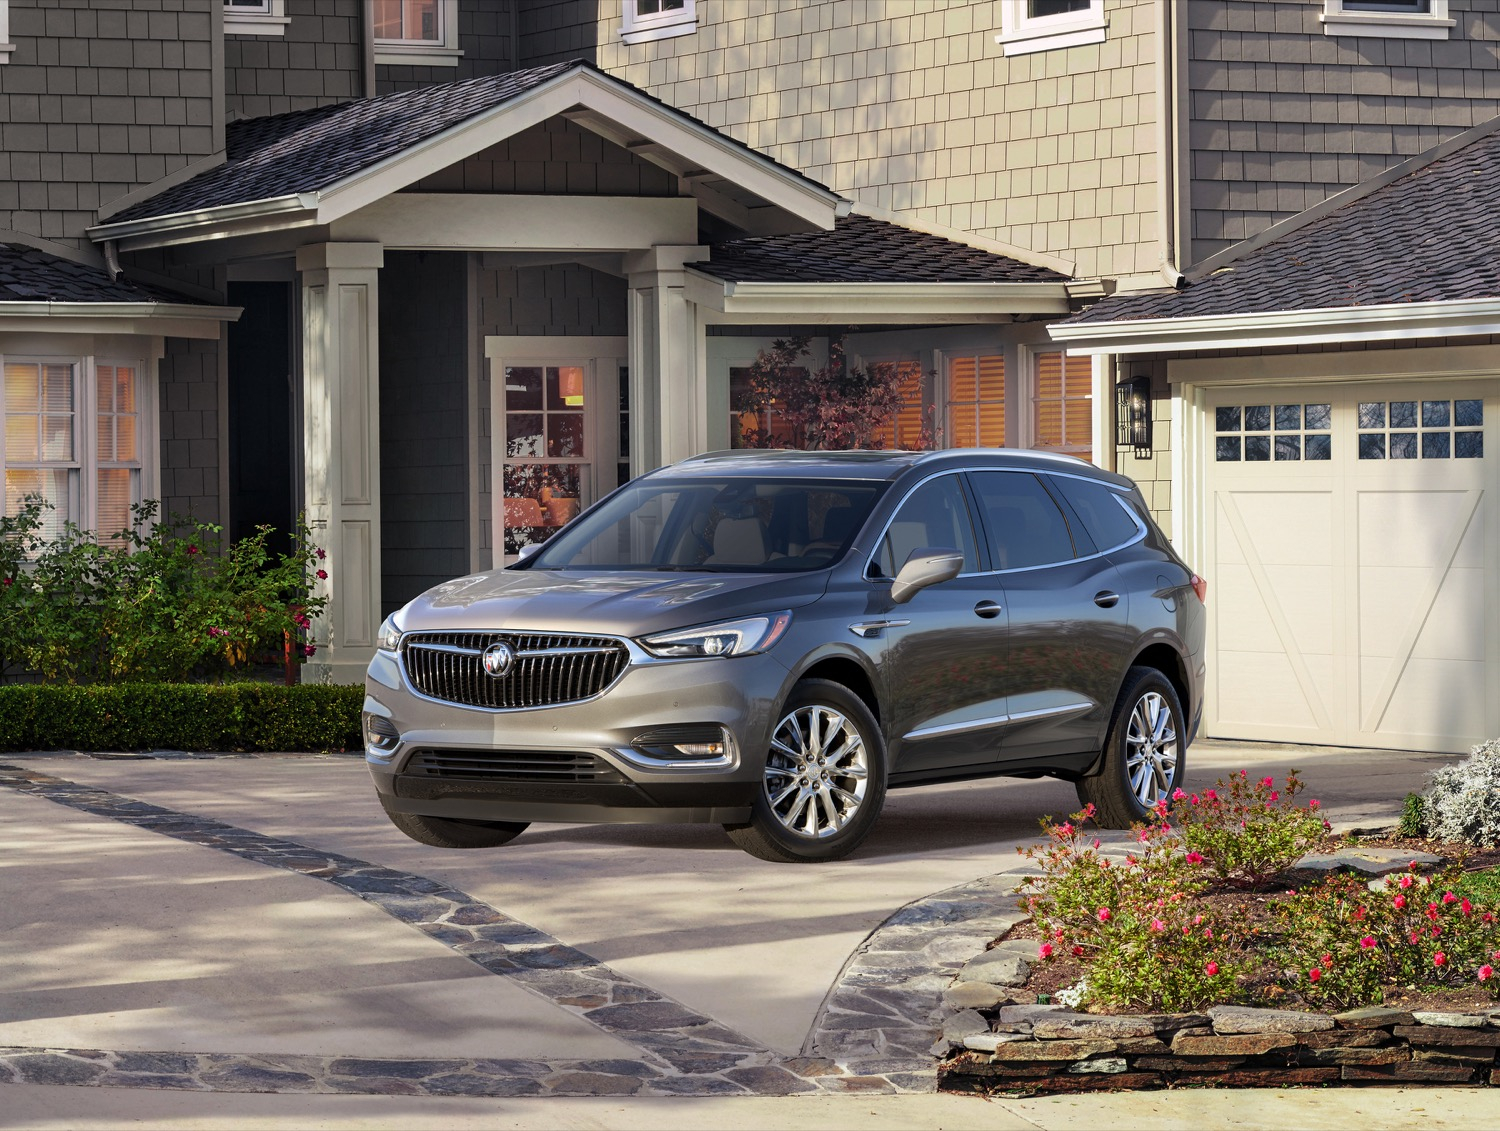 2018 Buick Enclave Trim Levels   Gm Authority New 2022 Buick Enclave Trim Levels, Transmission, Towing